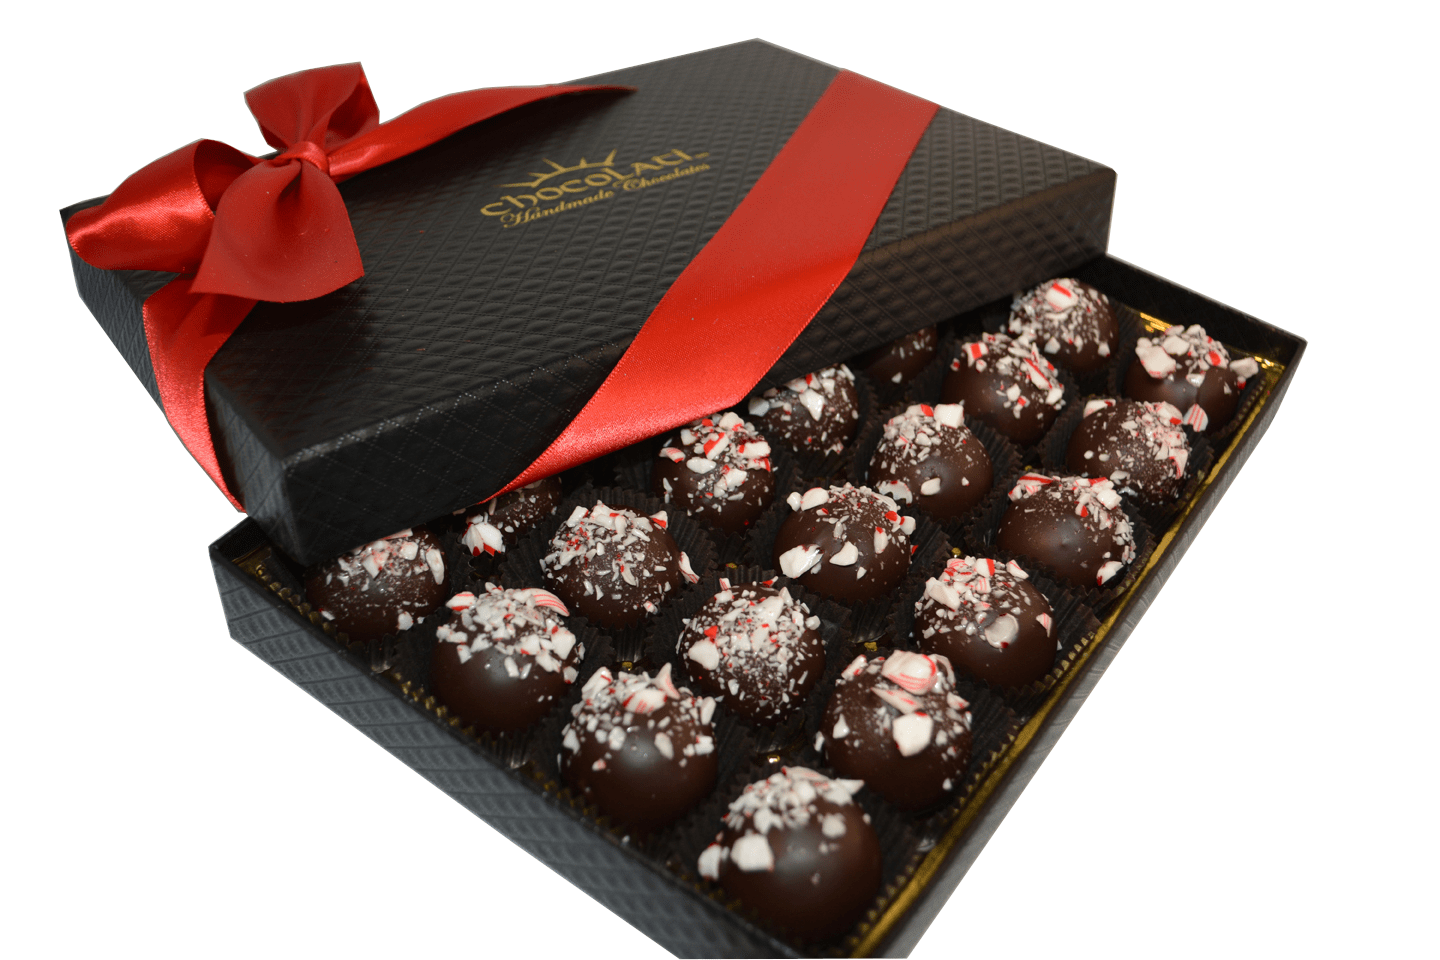 24pc. Candy Cane Truffle Gift Box